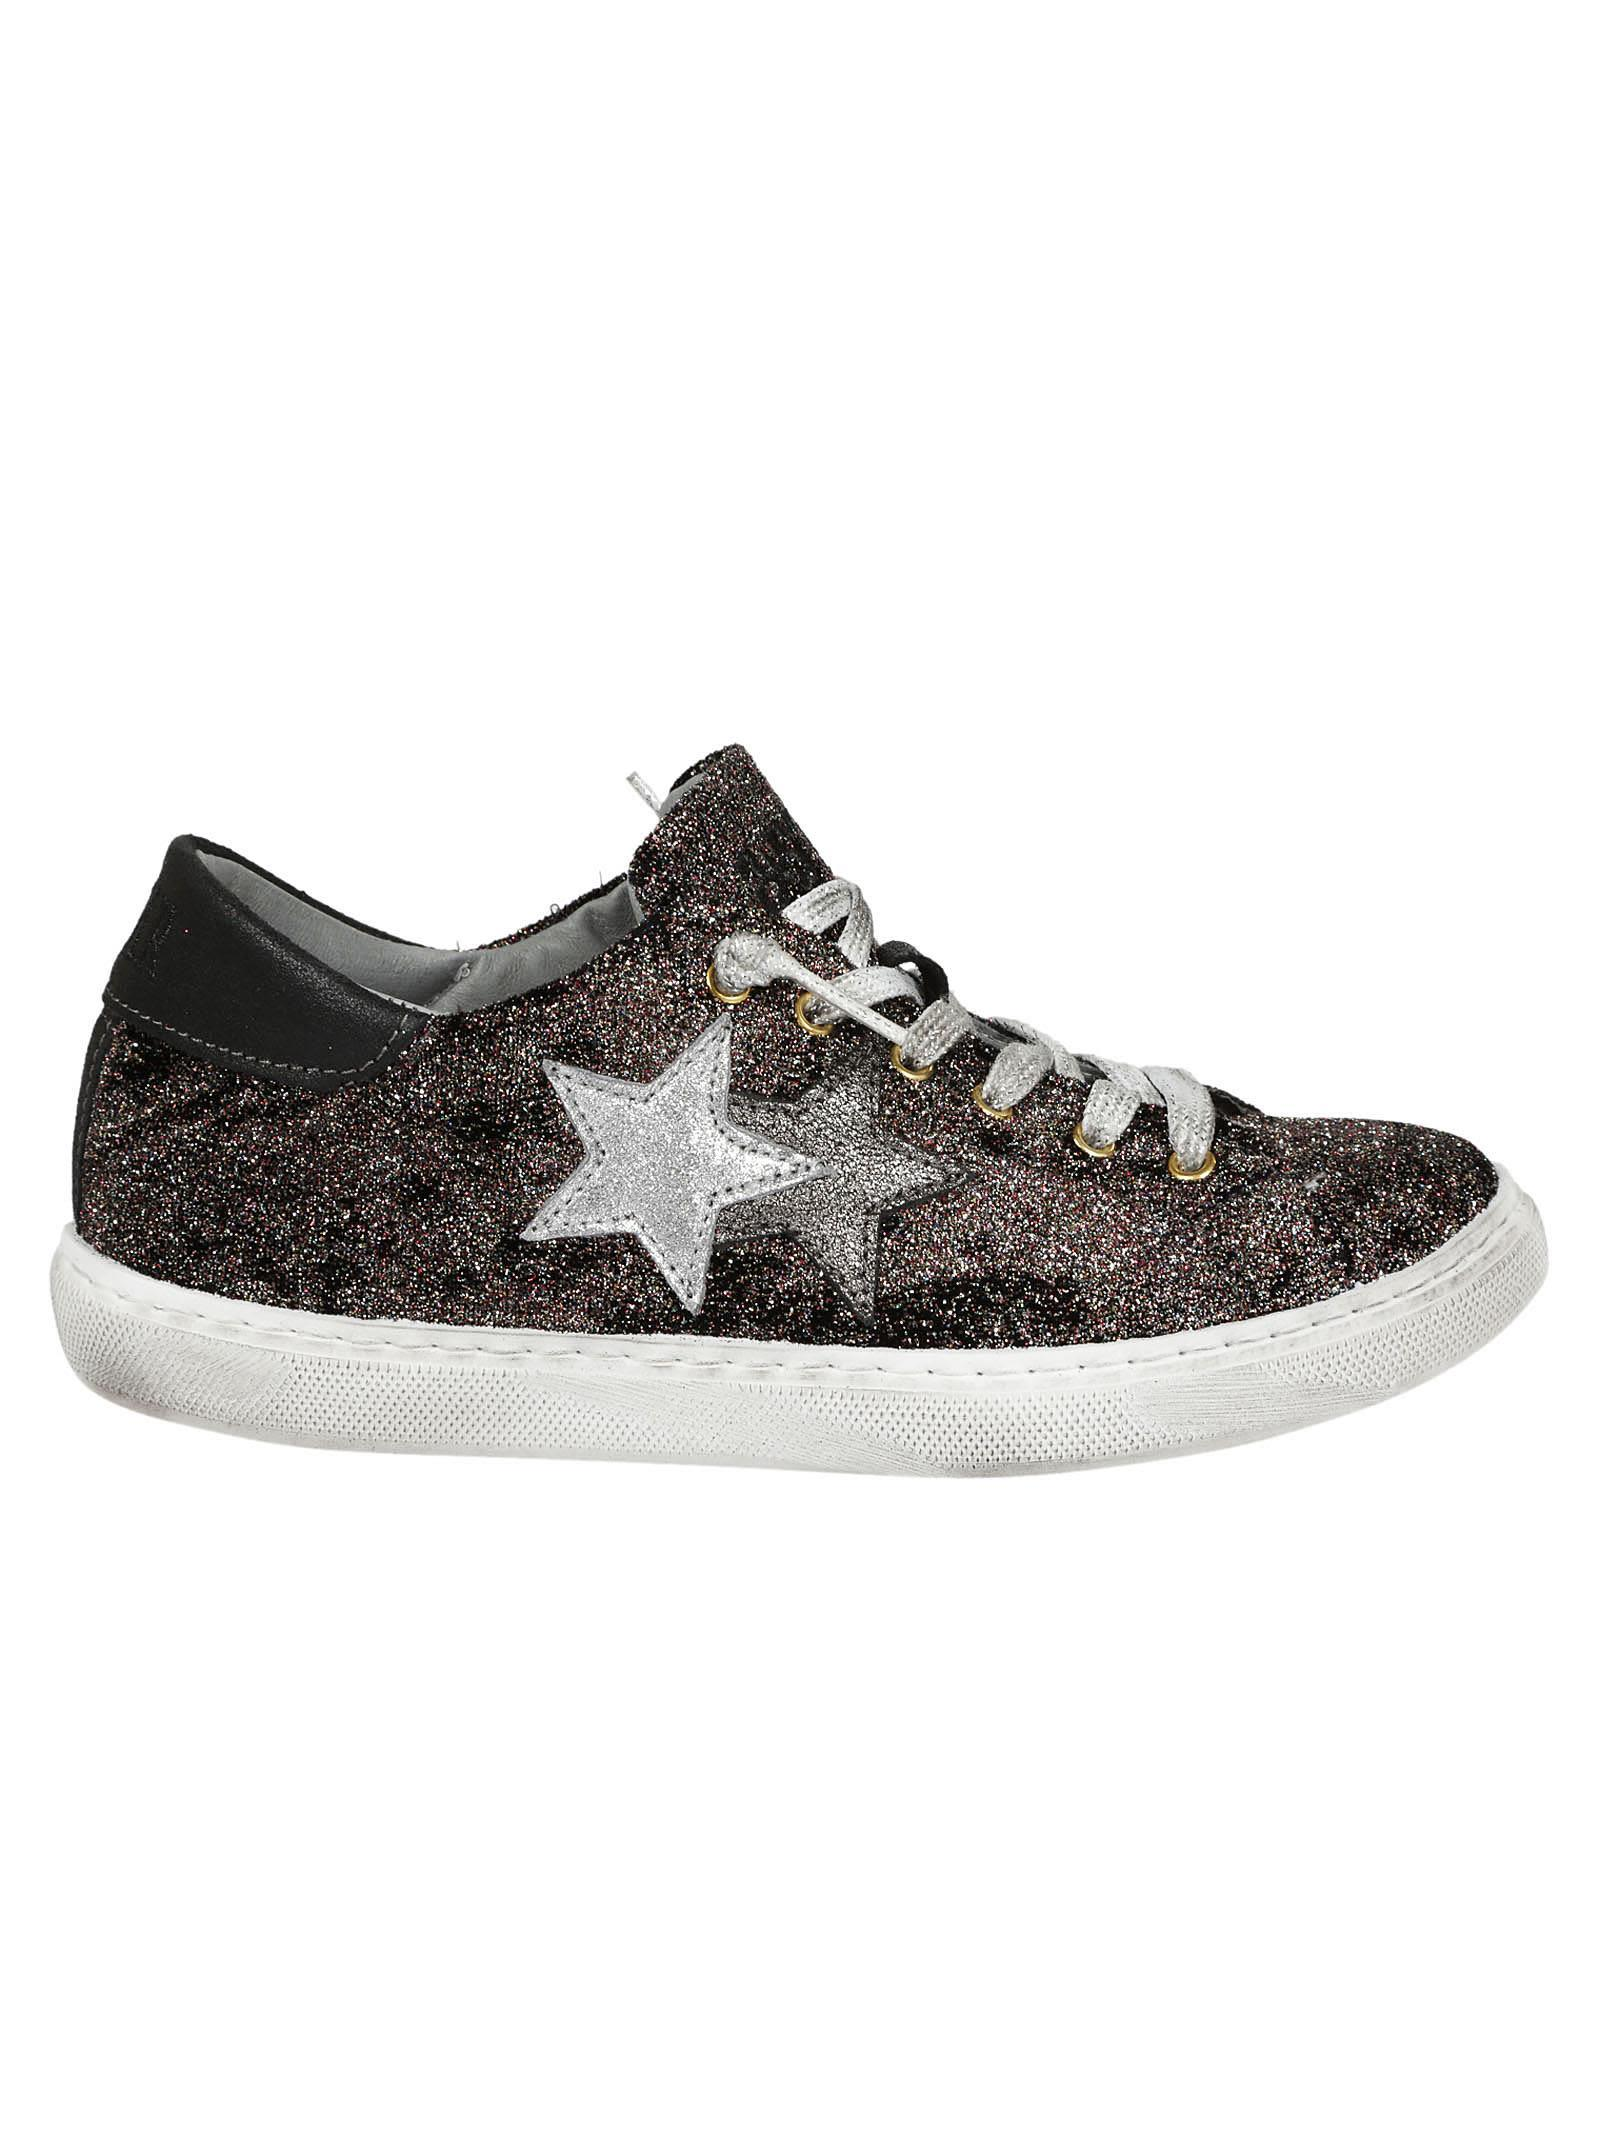 2star Women's  Multicolor Leather Sneakers